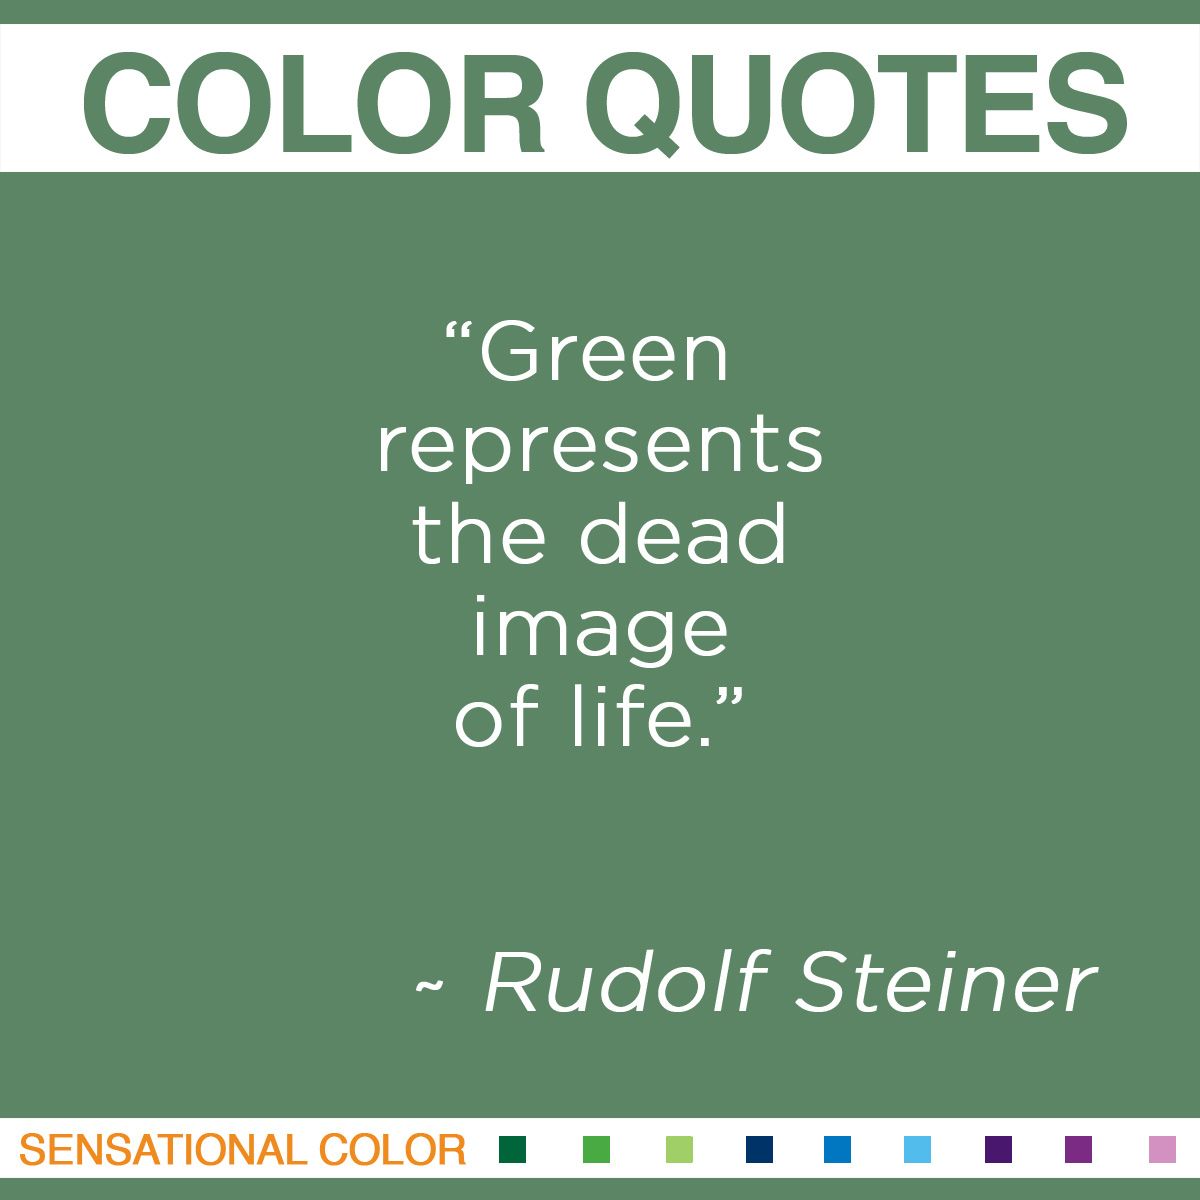 """Green represents the dead image of life."" - Rudolf Steiner"